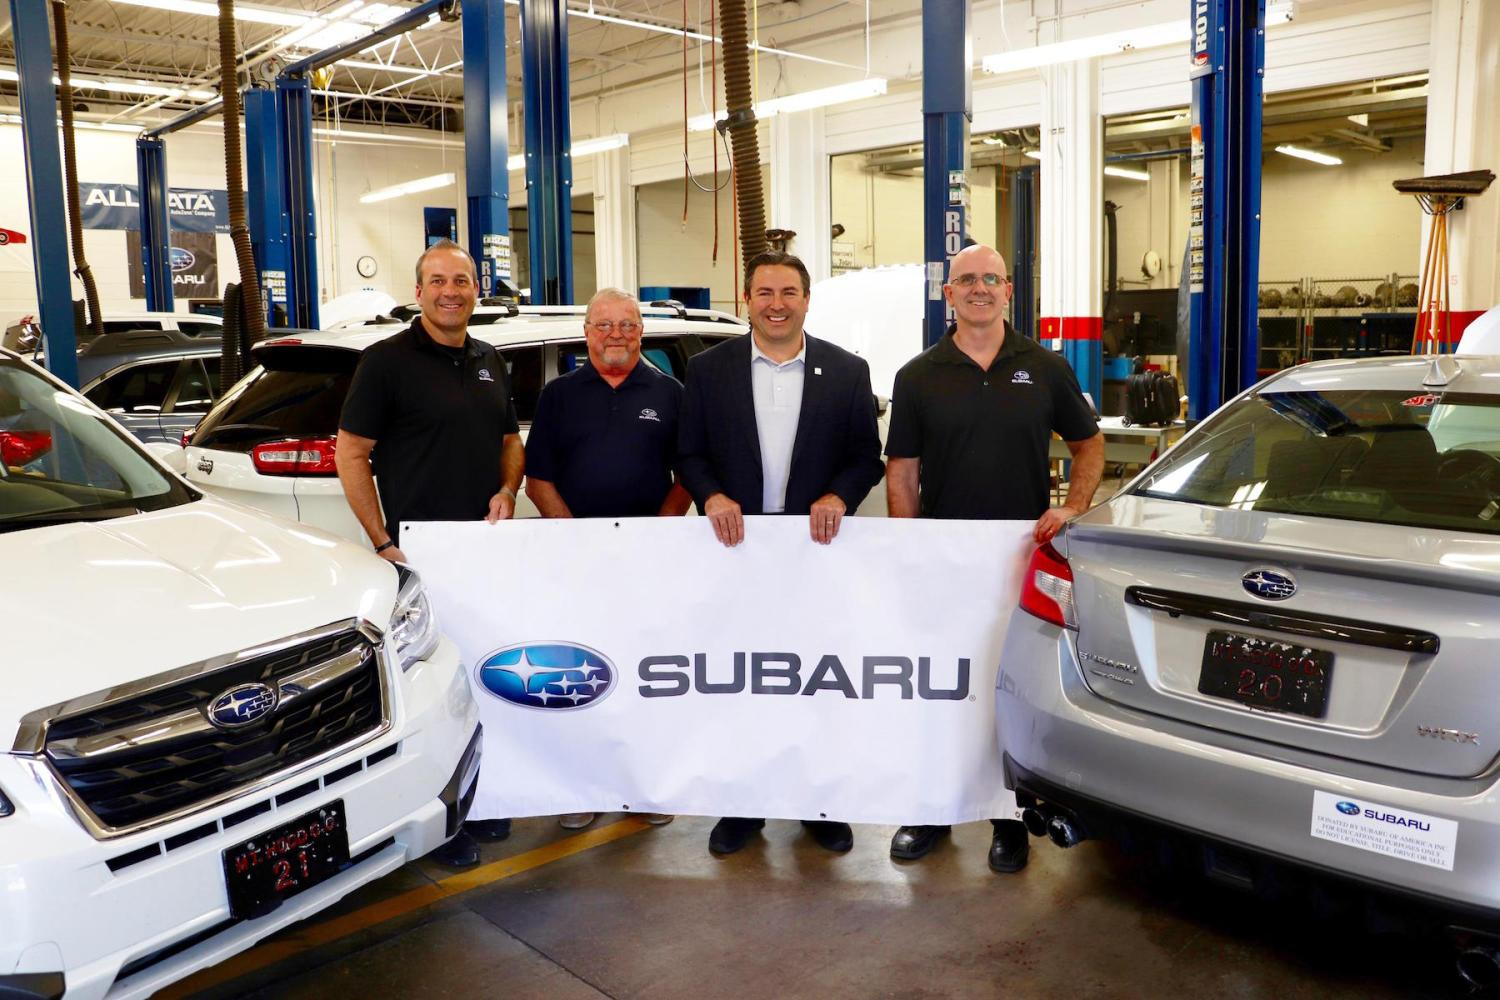 Subaru opens college degree course